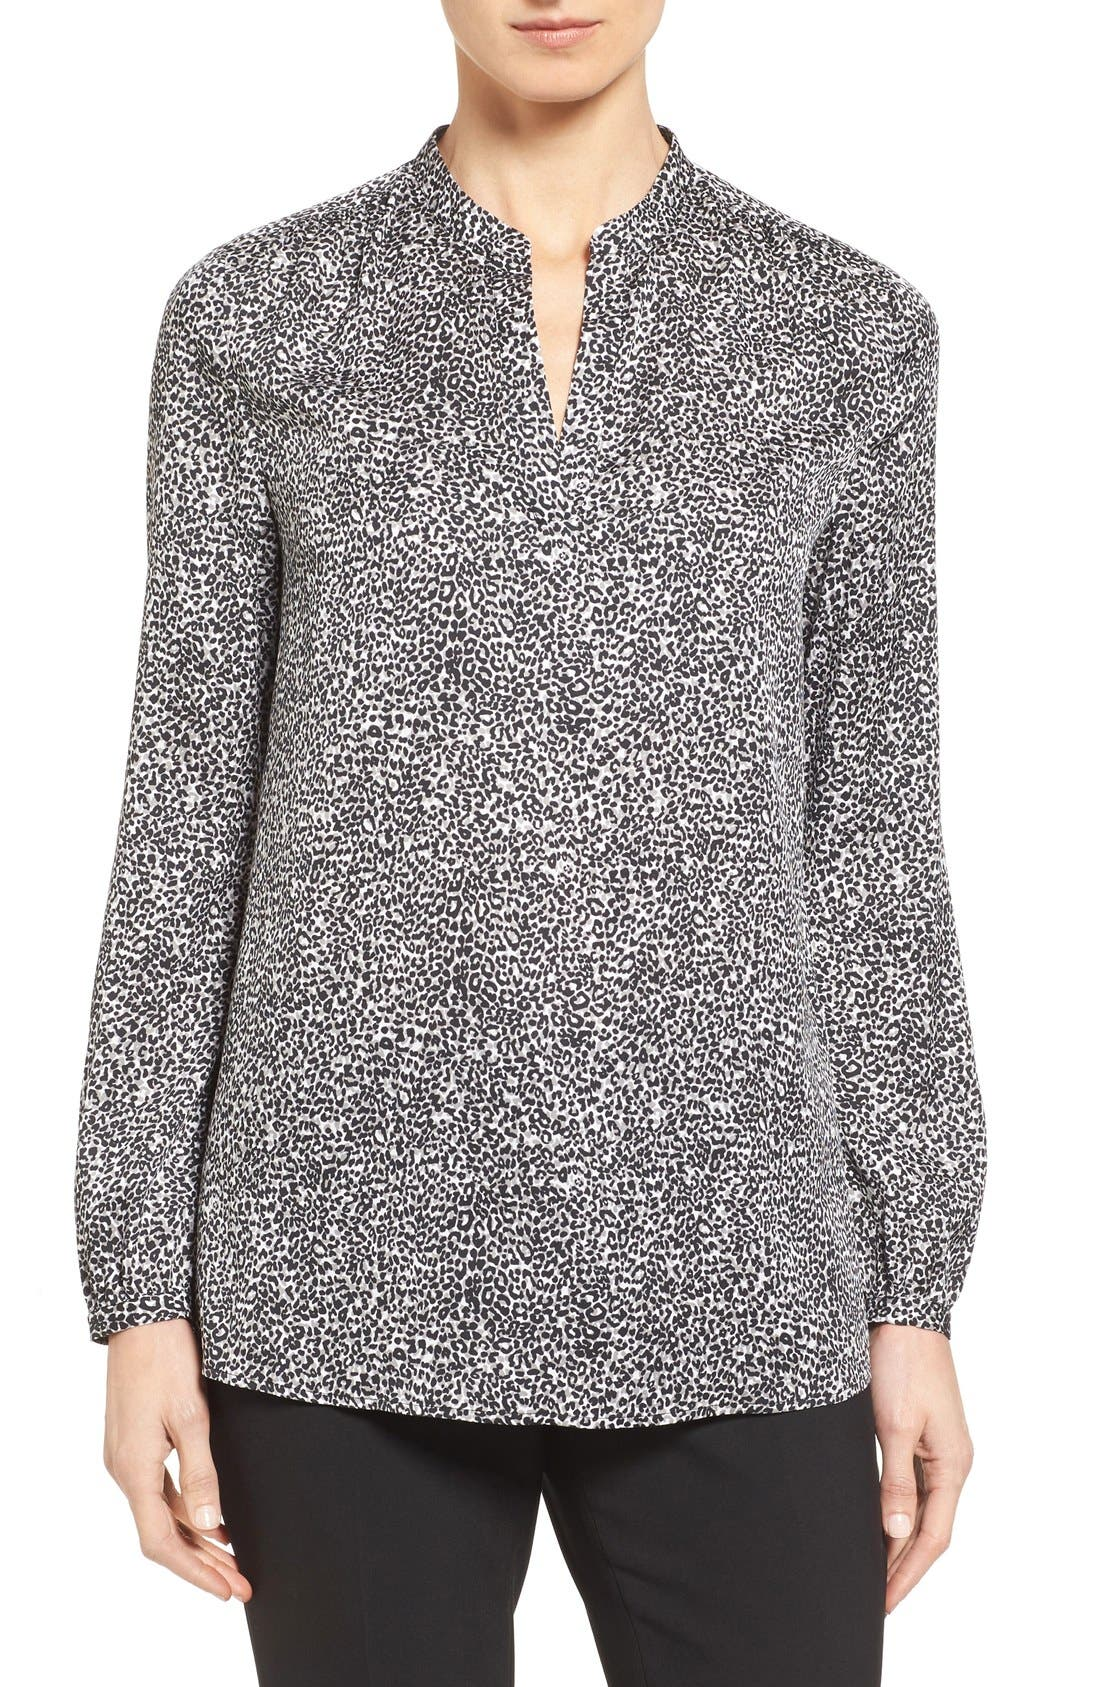 Alternate Image 1 Selected - Nordstrom Collection Split Neck Print Stretch Silk Blouse